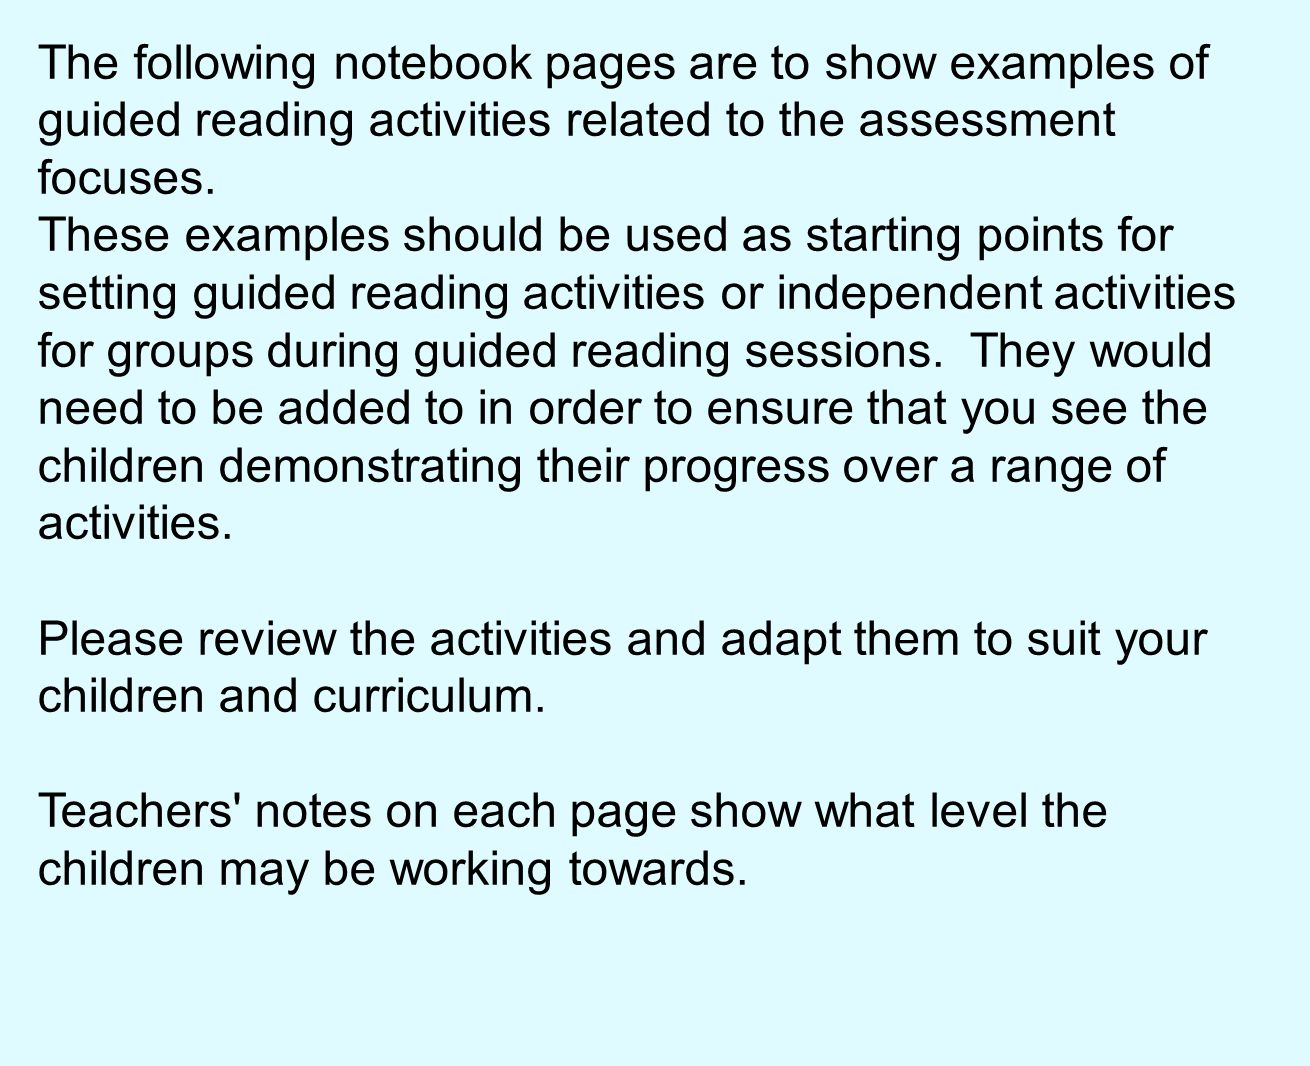 The following notebook pages are to show examples of guided reading activities related to the assessment focuses.